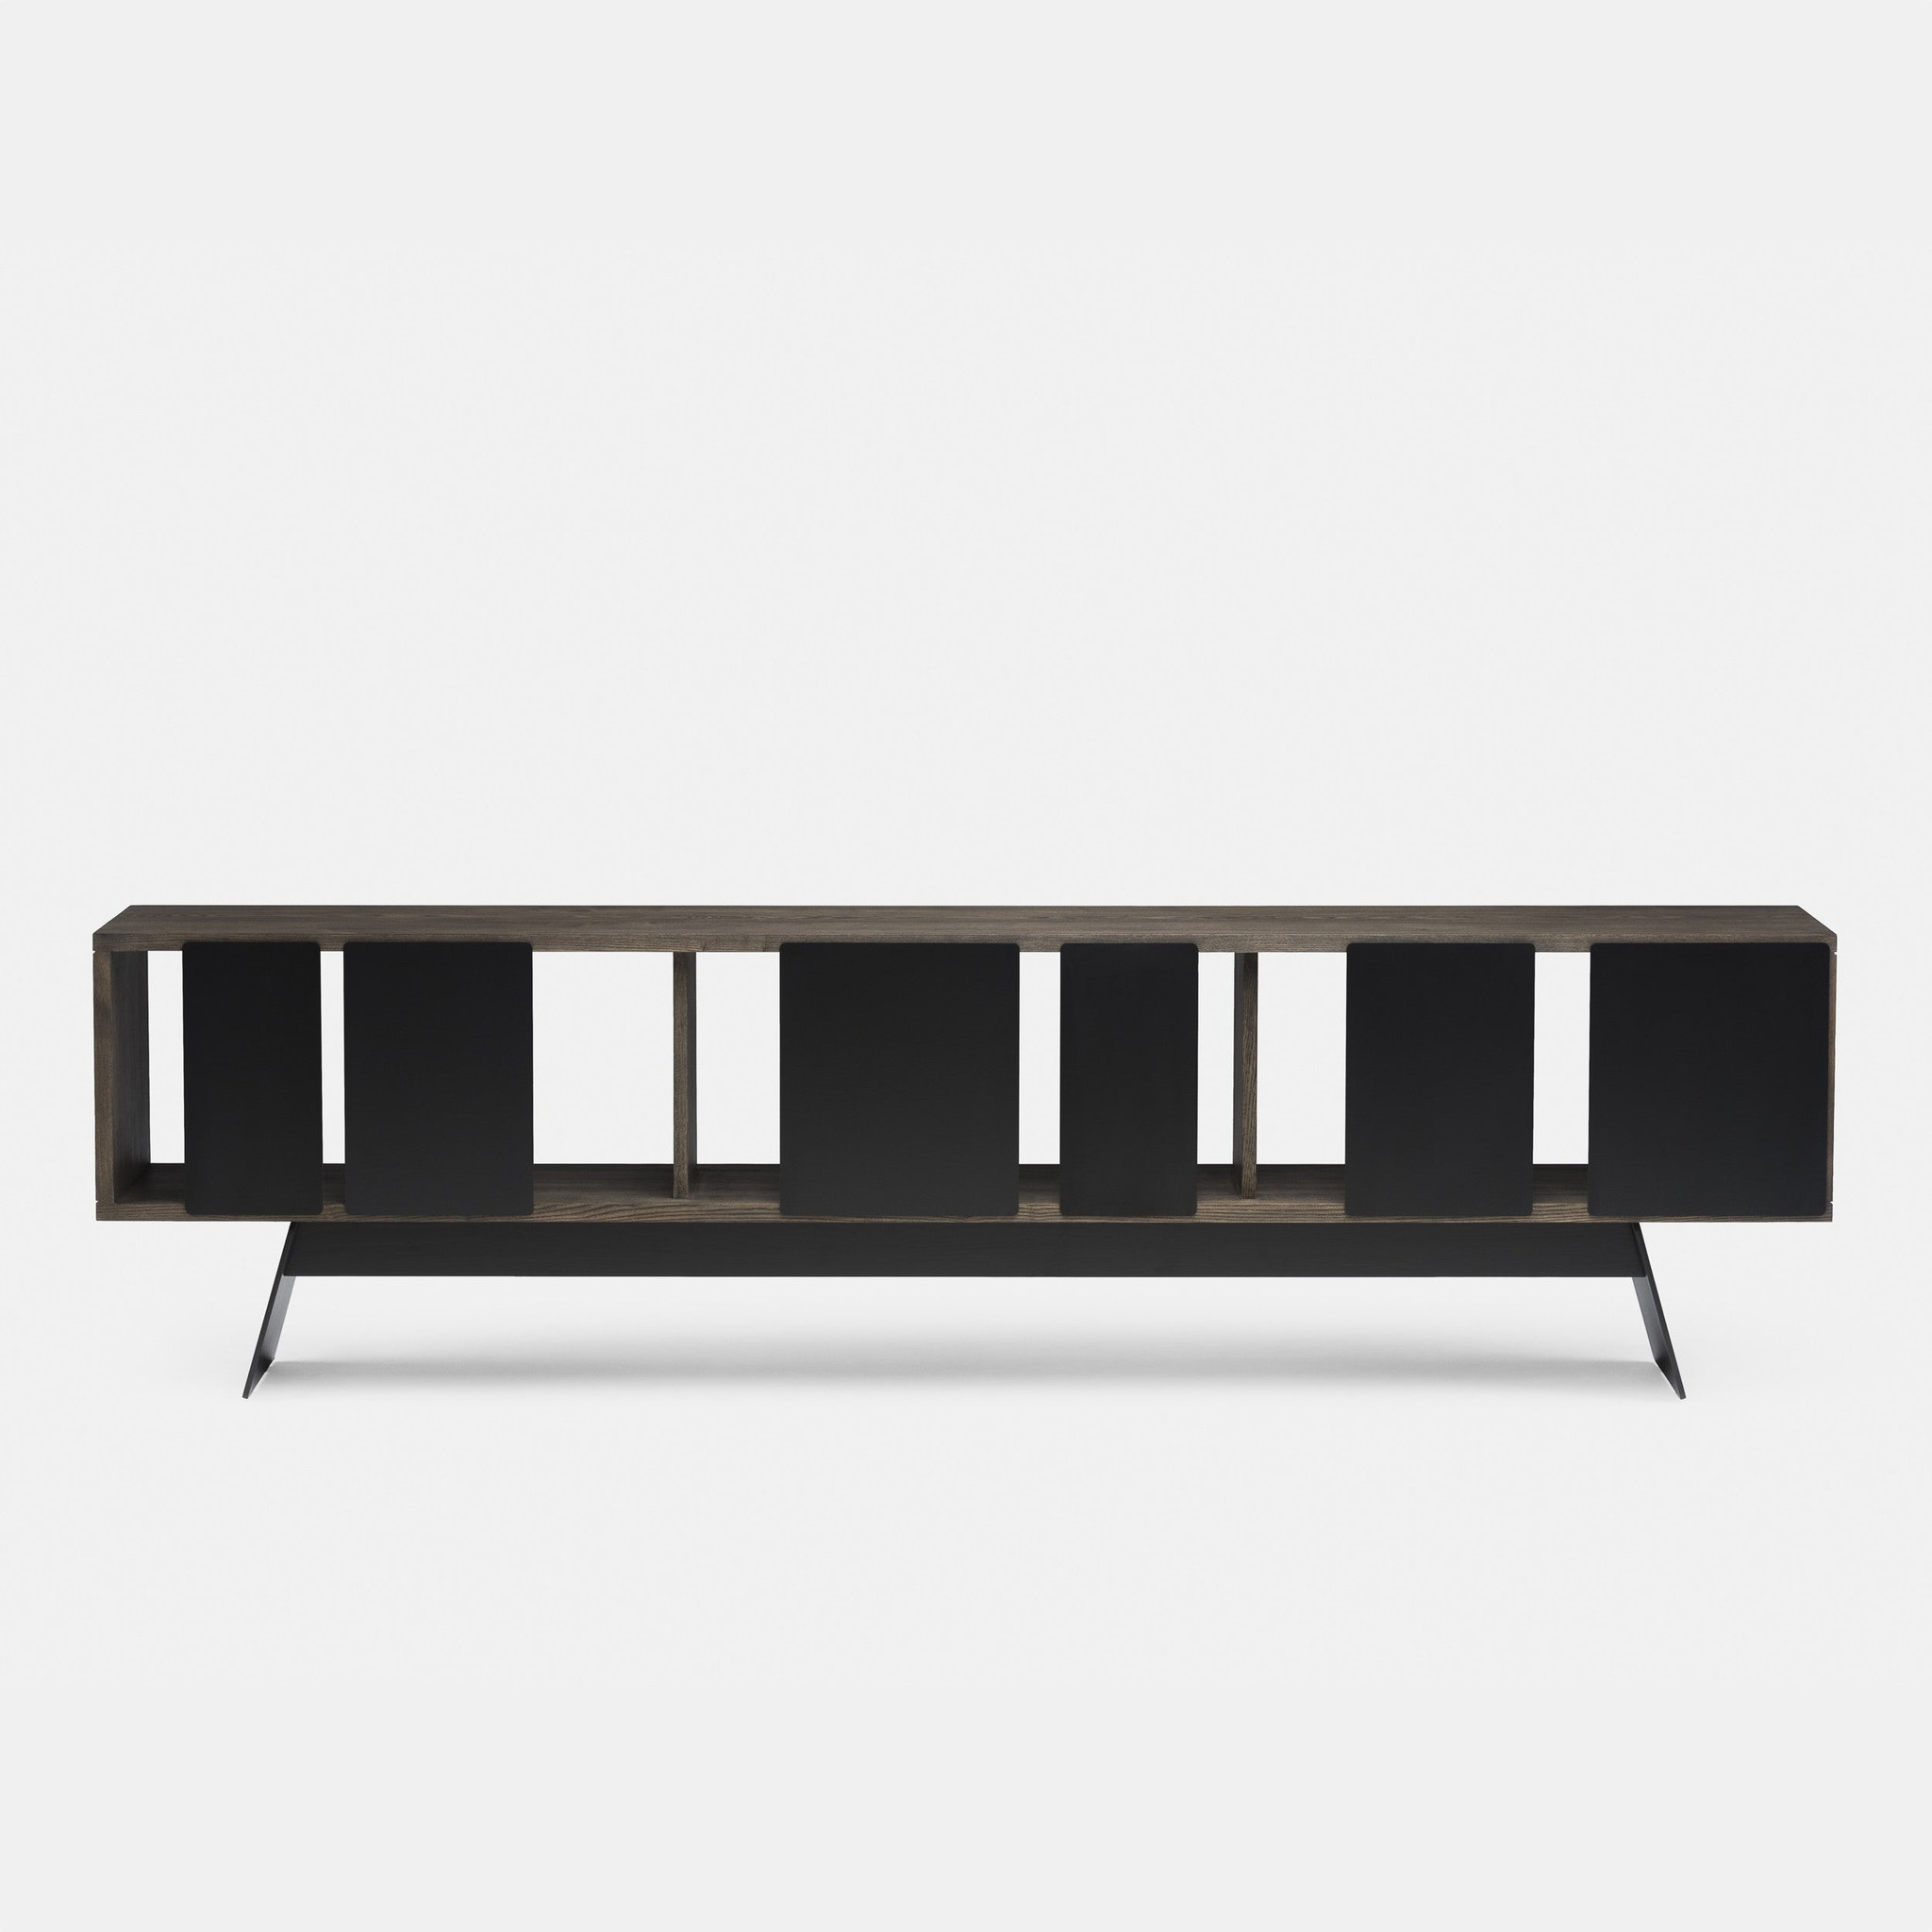 Different Trains Cabinet with Black Doors by Matthew Hilton